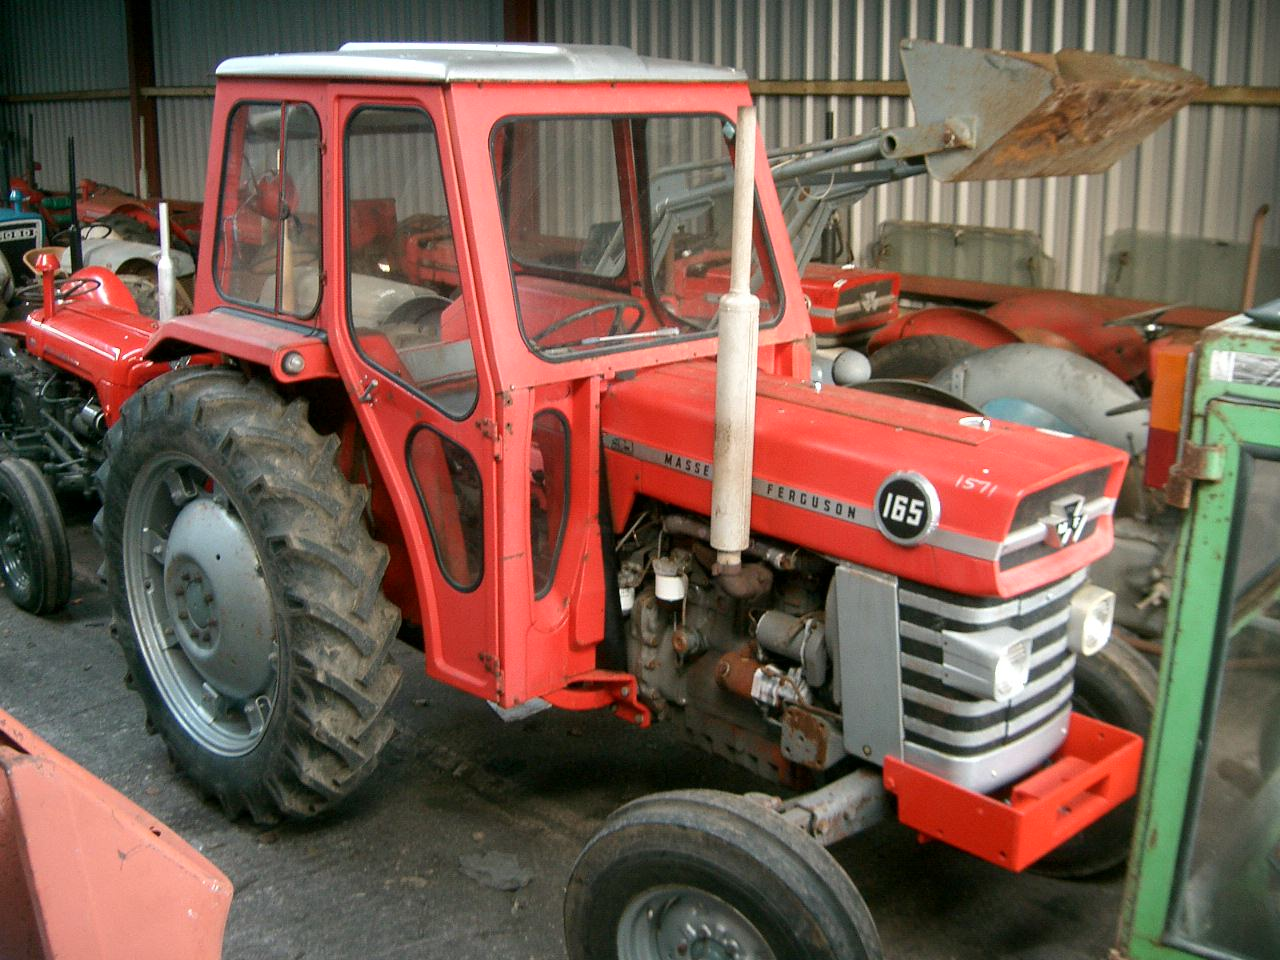 Massey ferguson 165 photo - 1